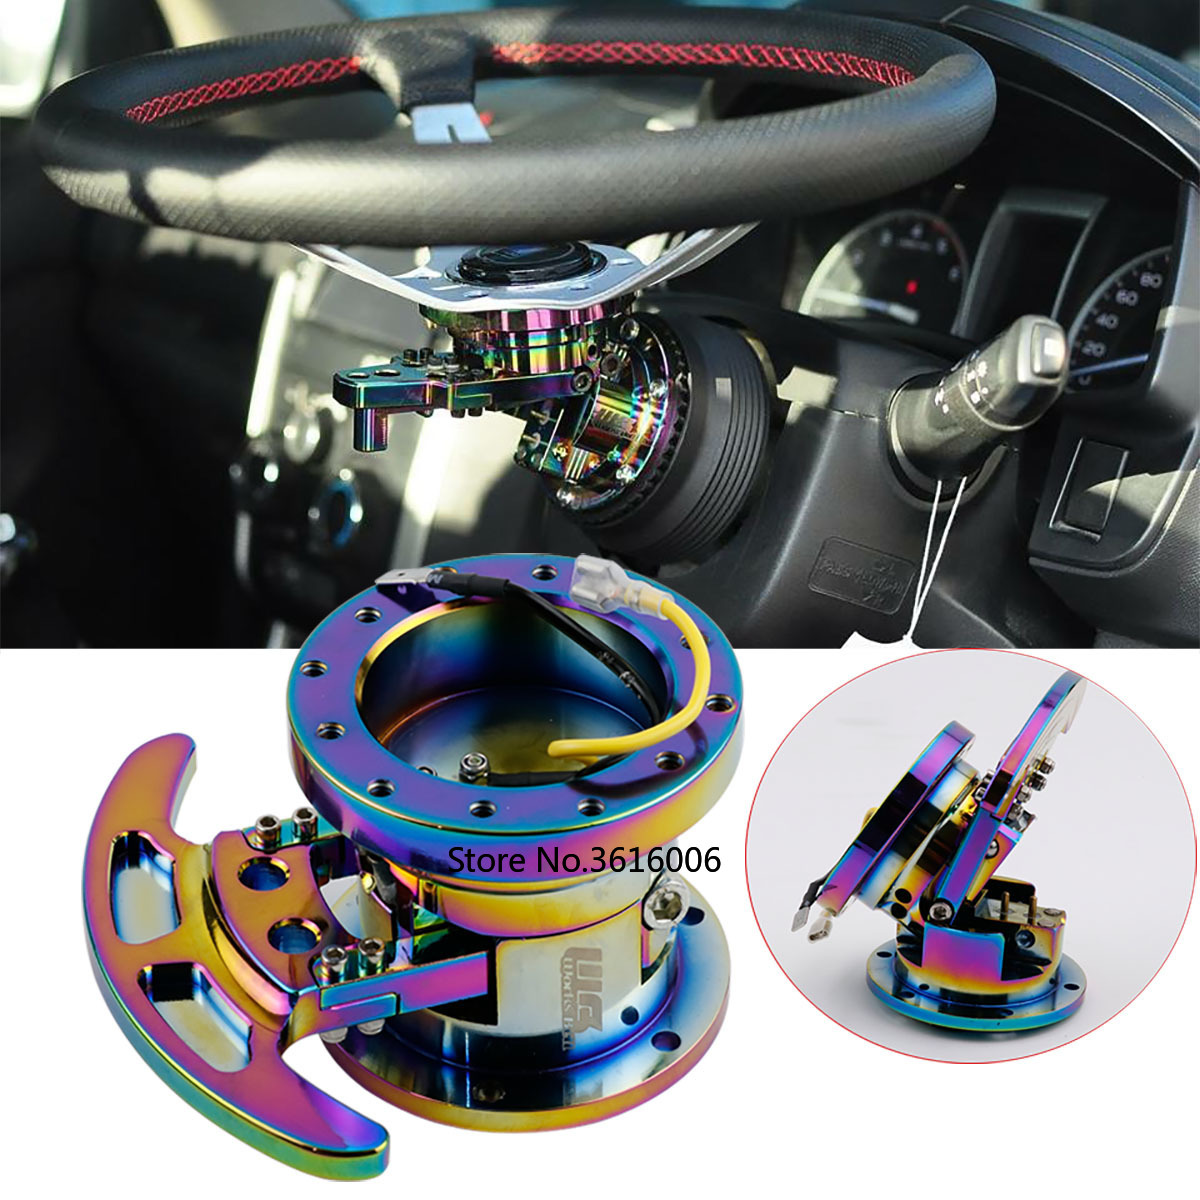 New High WORKS BELL GTC Tilt Racing Steering Wheel Quick Release Hub Kit Adapter Body Removable Snap Off Boss Kit